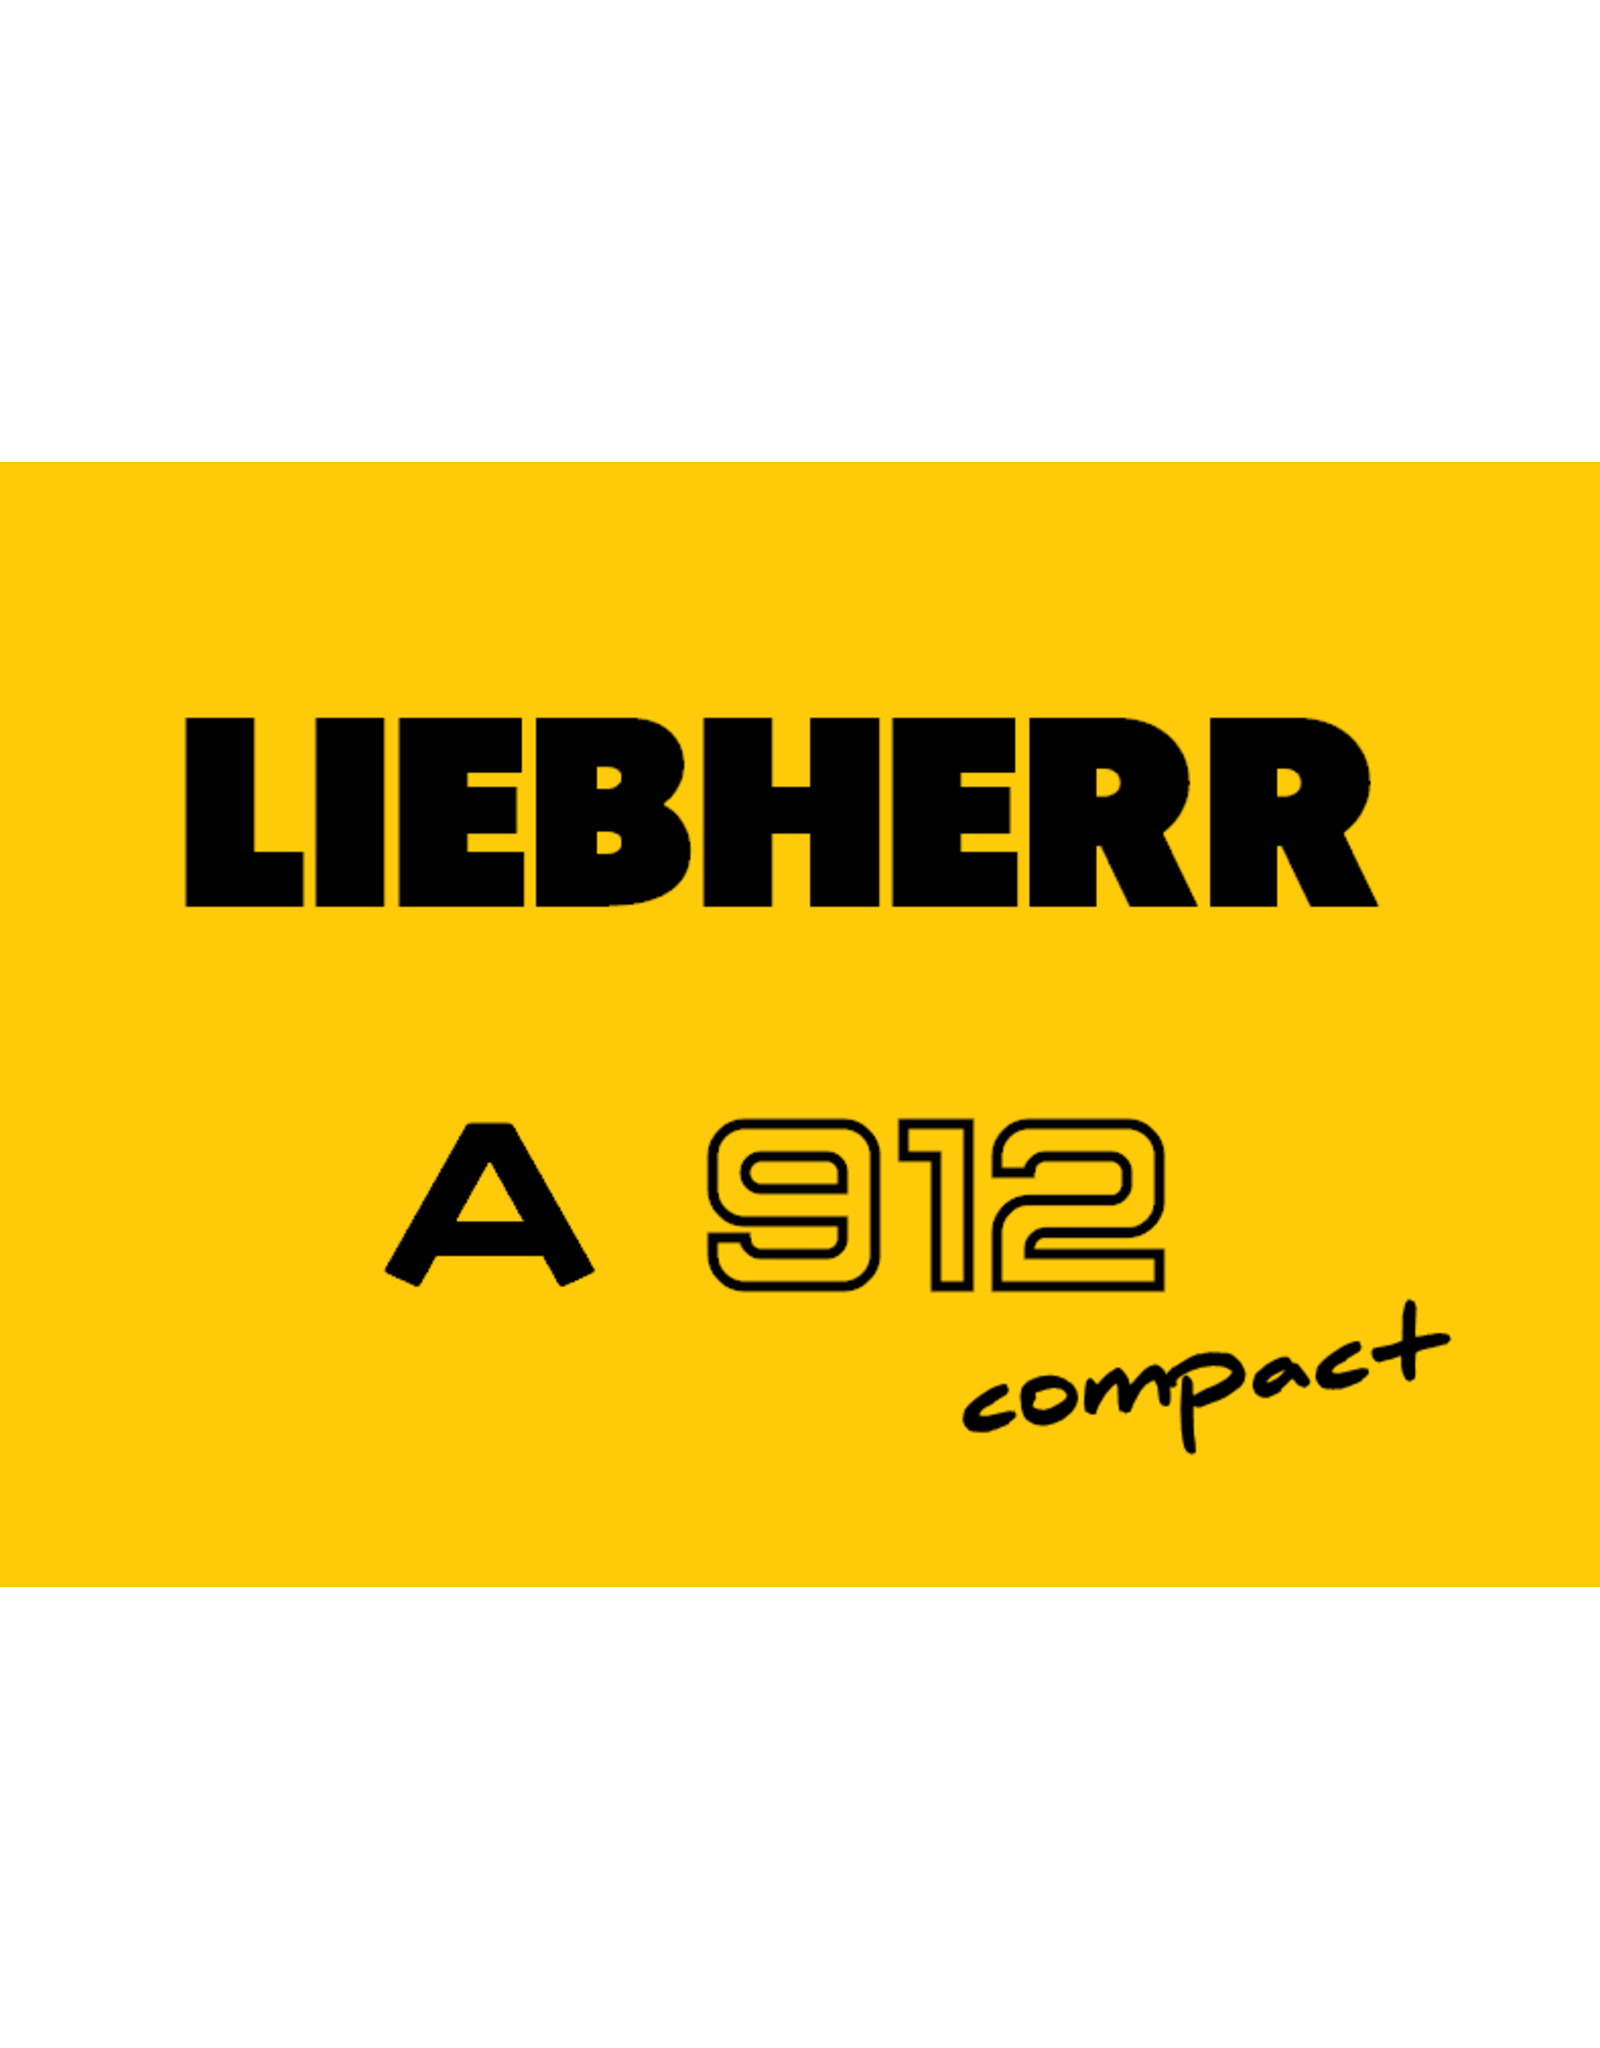 Echle Hartstahl GmbH FOPS for Liebherr A 912 Compact